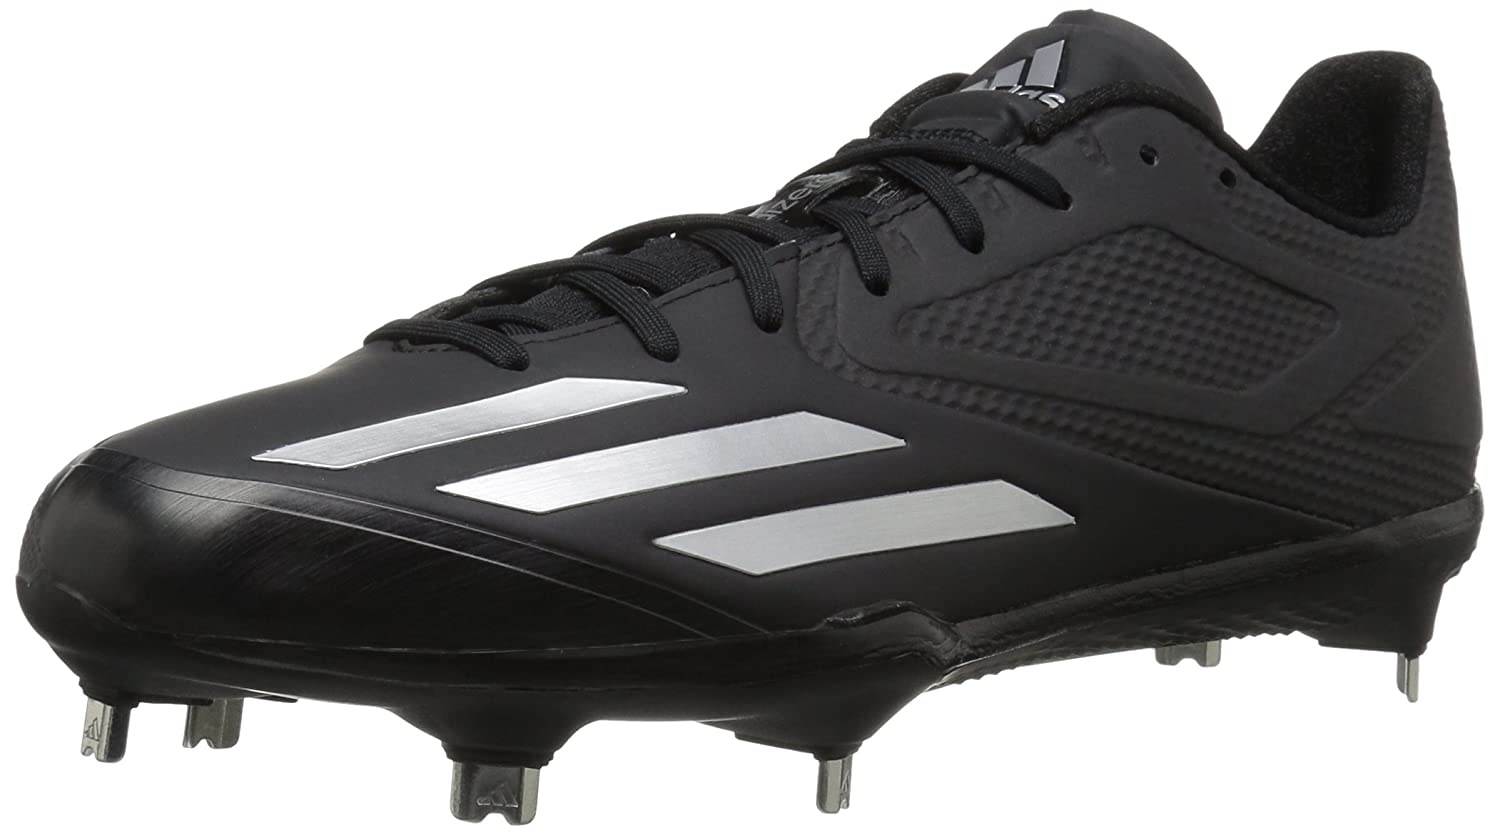 premium selection 8b09f be056 Amazon.com  adidas Performance Mens Adizero Afterburner 3 Baseball Shoe   Baseball  Softball